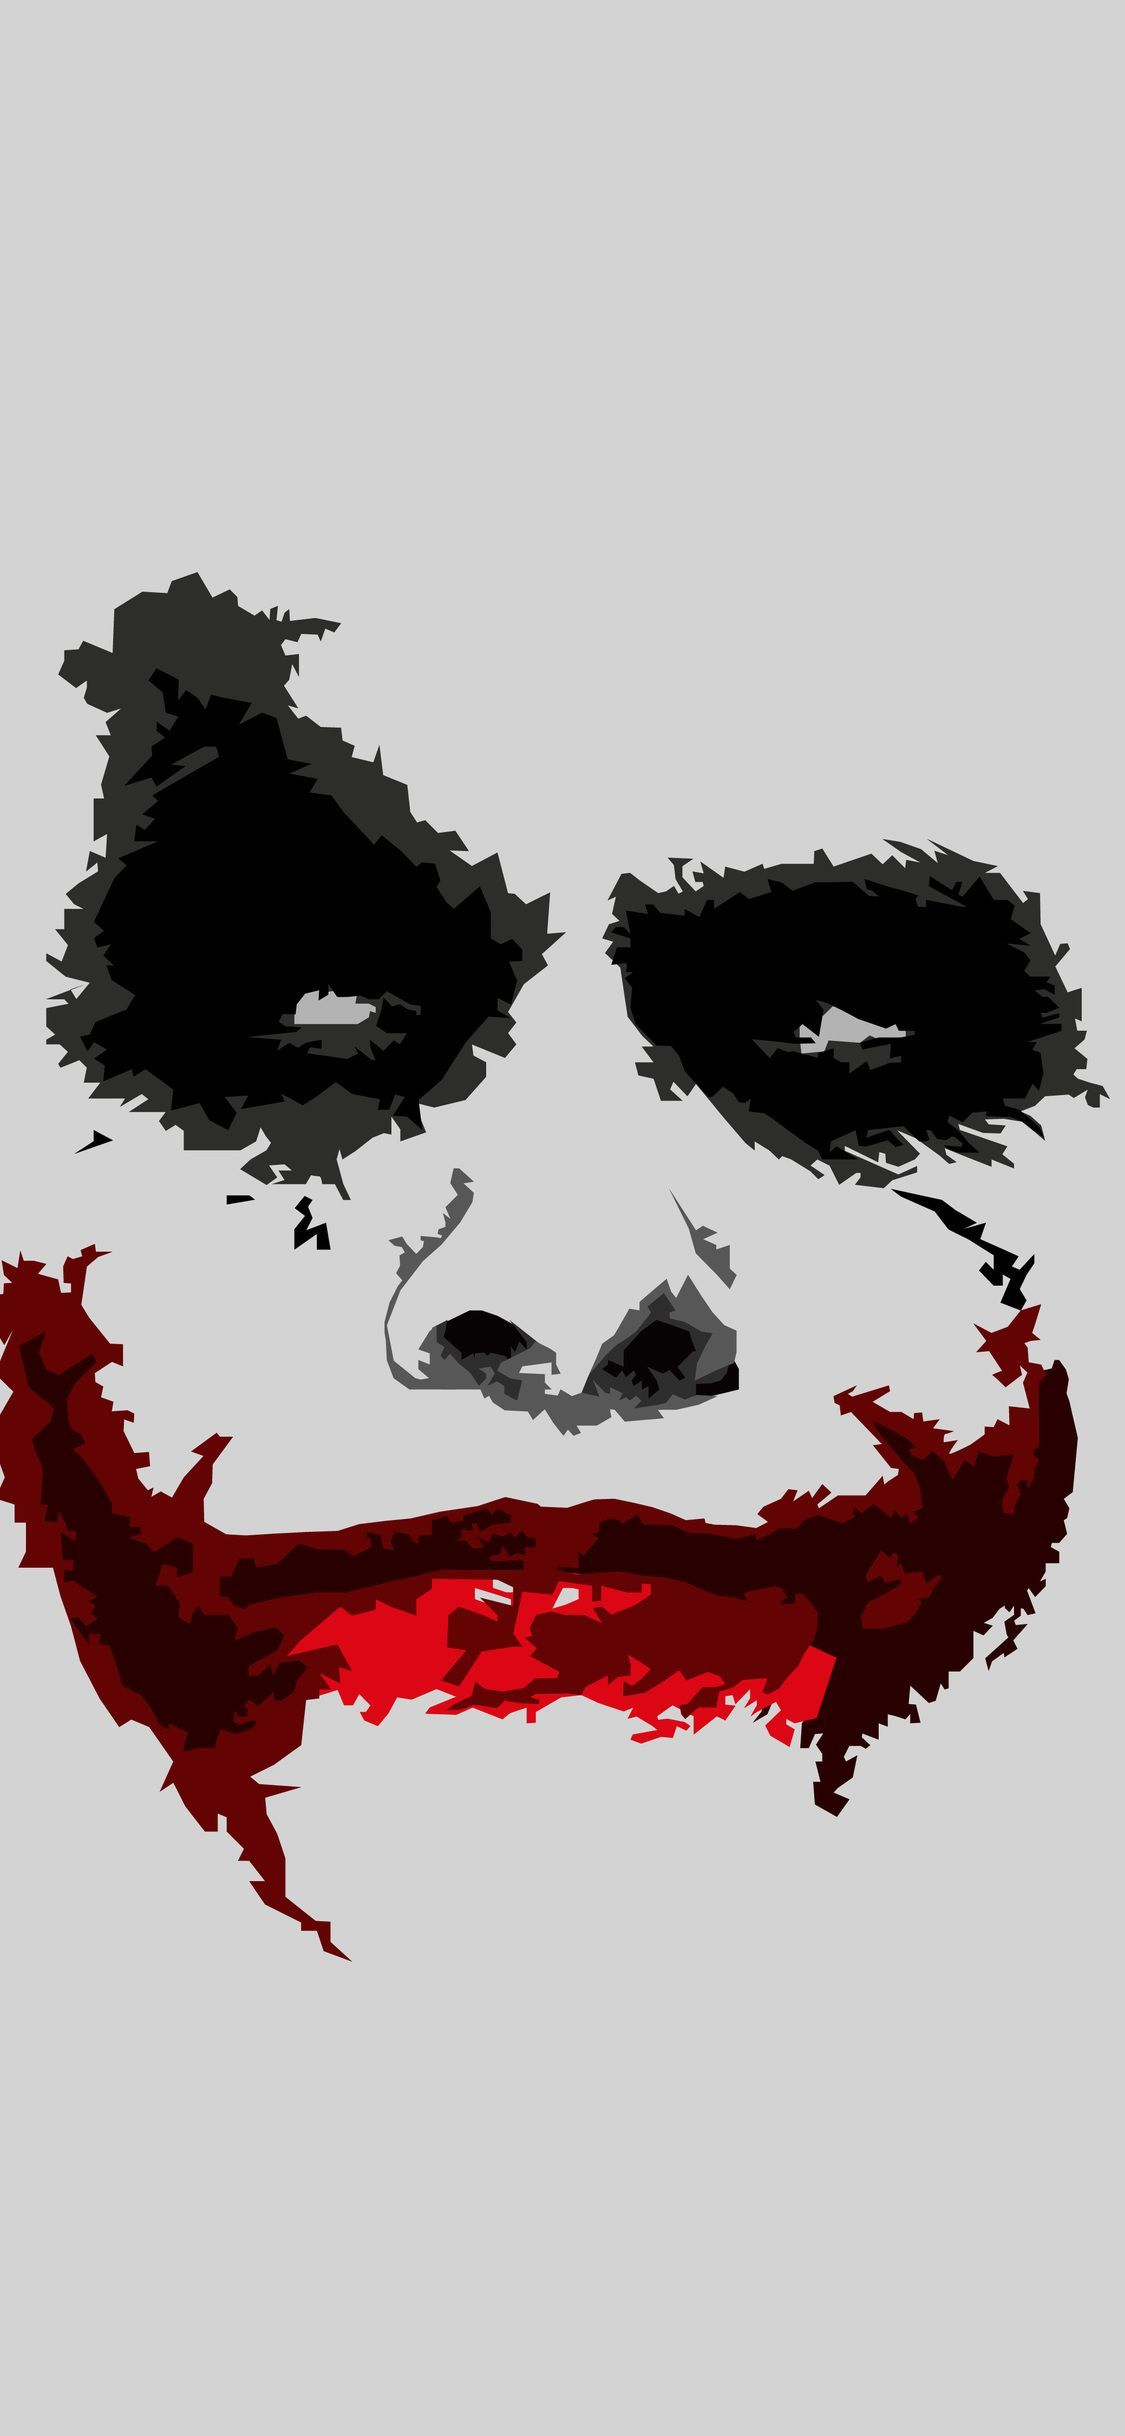 Minimalist Joker Iphone Wallpapers Top Free Minimalist